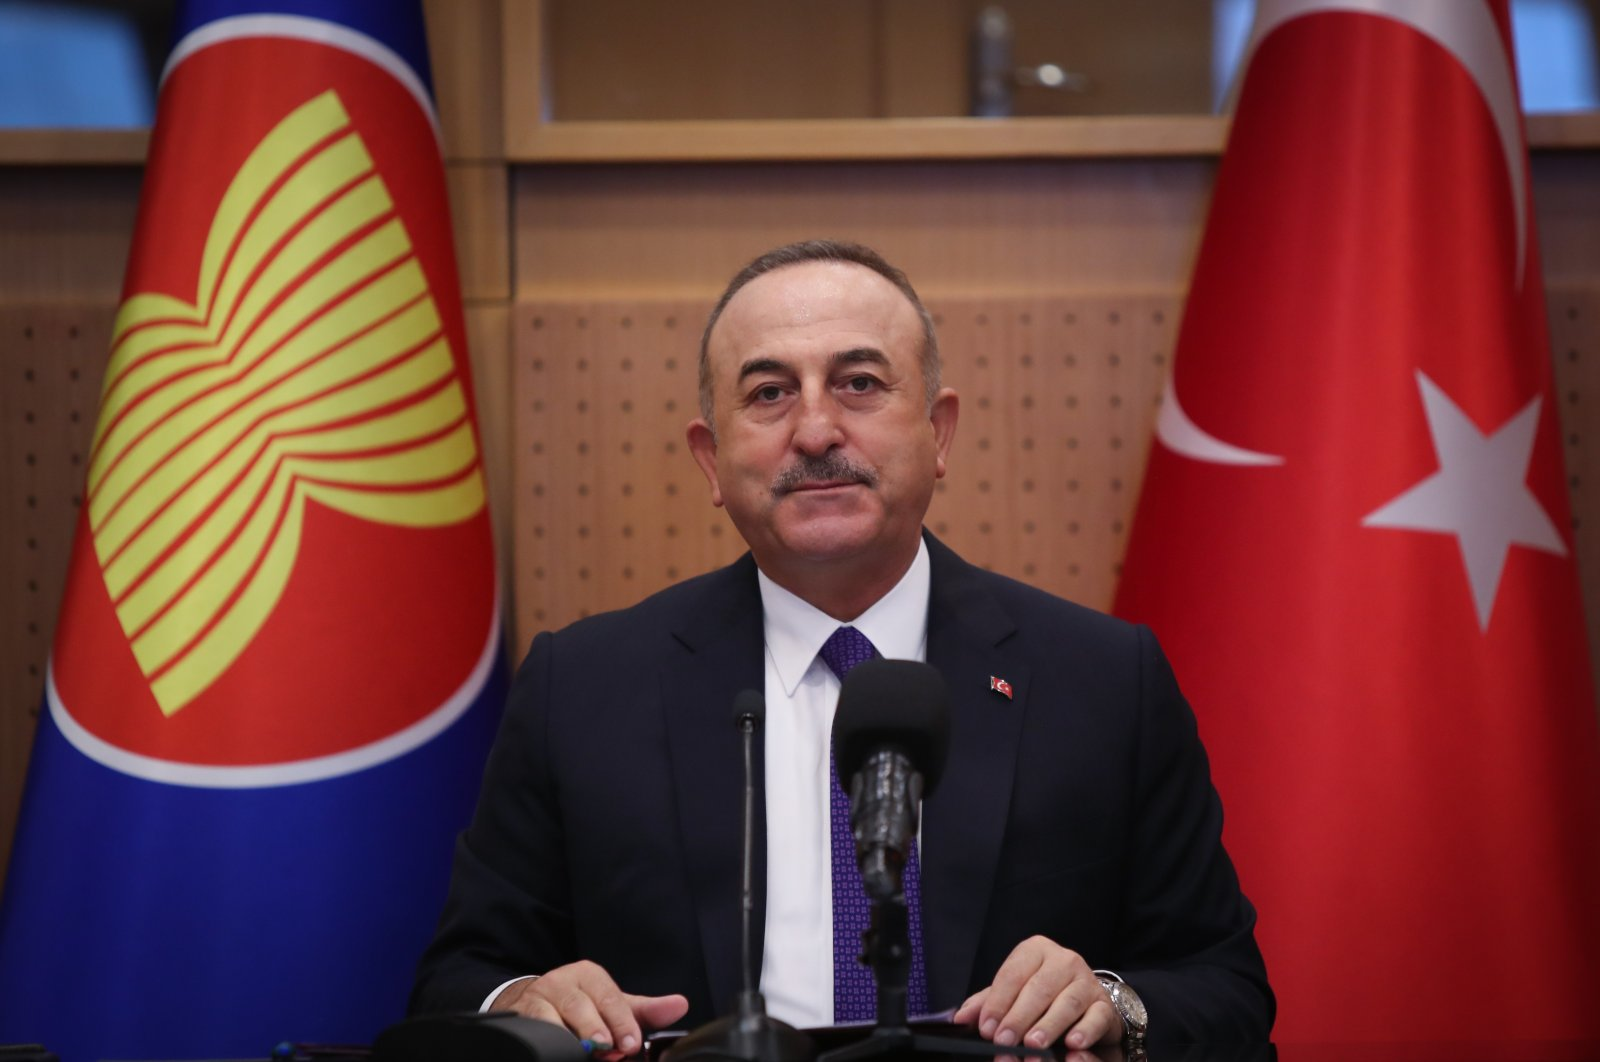 Foreign Minister Mevlüt Çavuşoğlu during a meeting with the ambassadors of the ASEAN member countries in Ankara, Jan. 6, 2021. (AA)